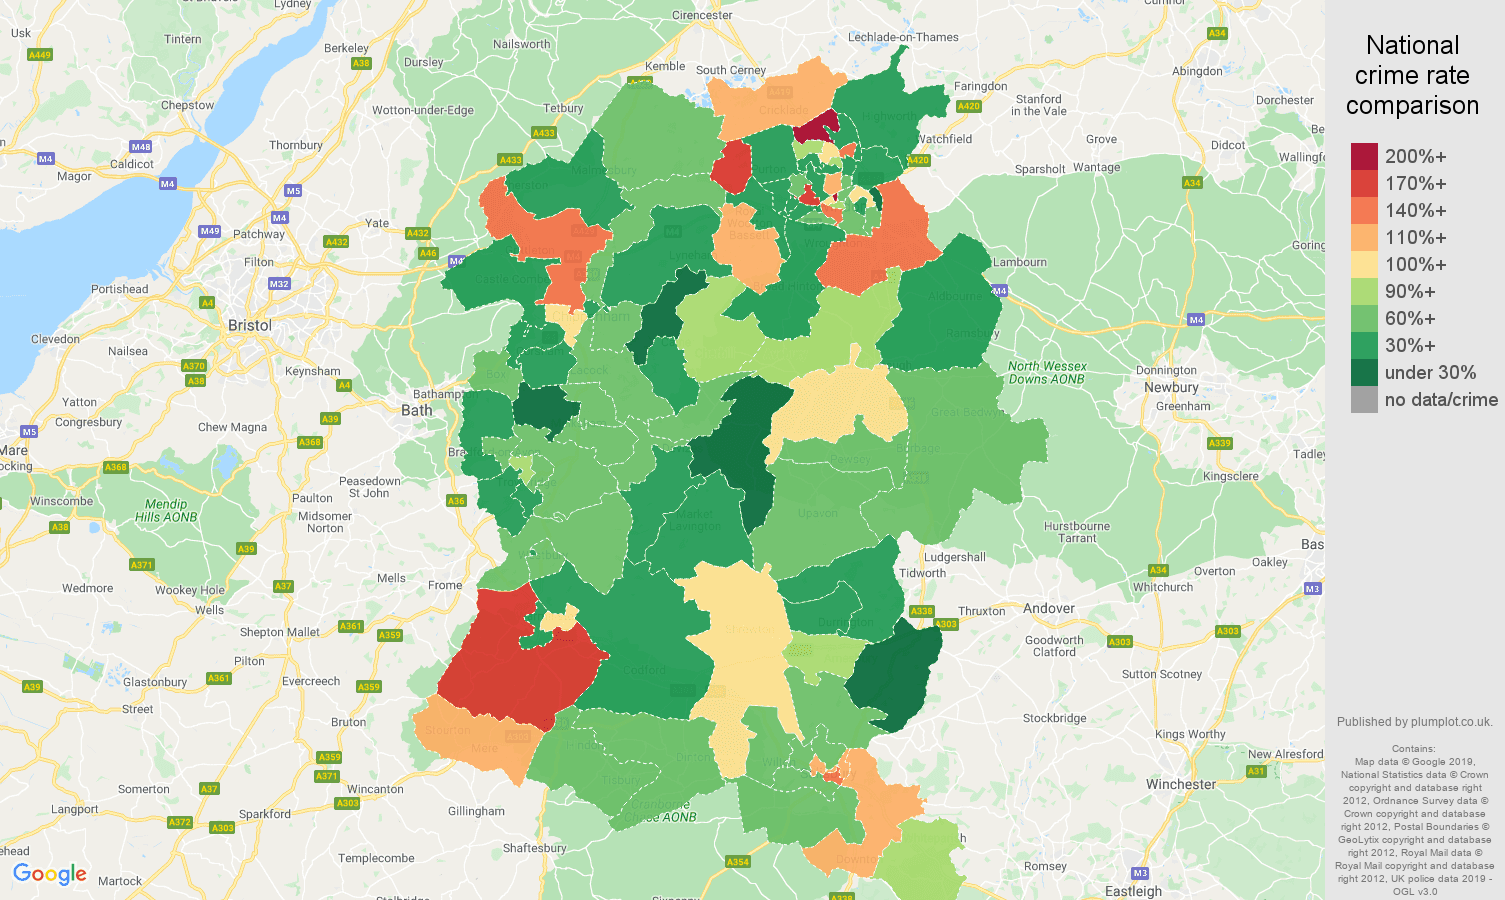 Wiltshire other theft crime rate comparison map